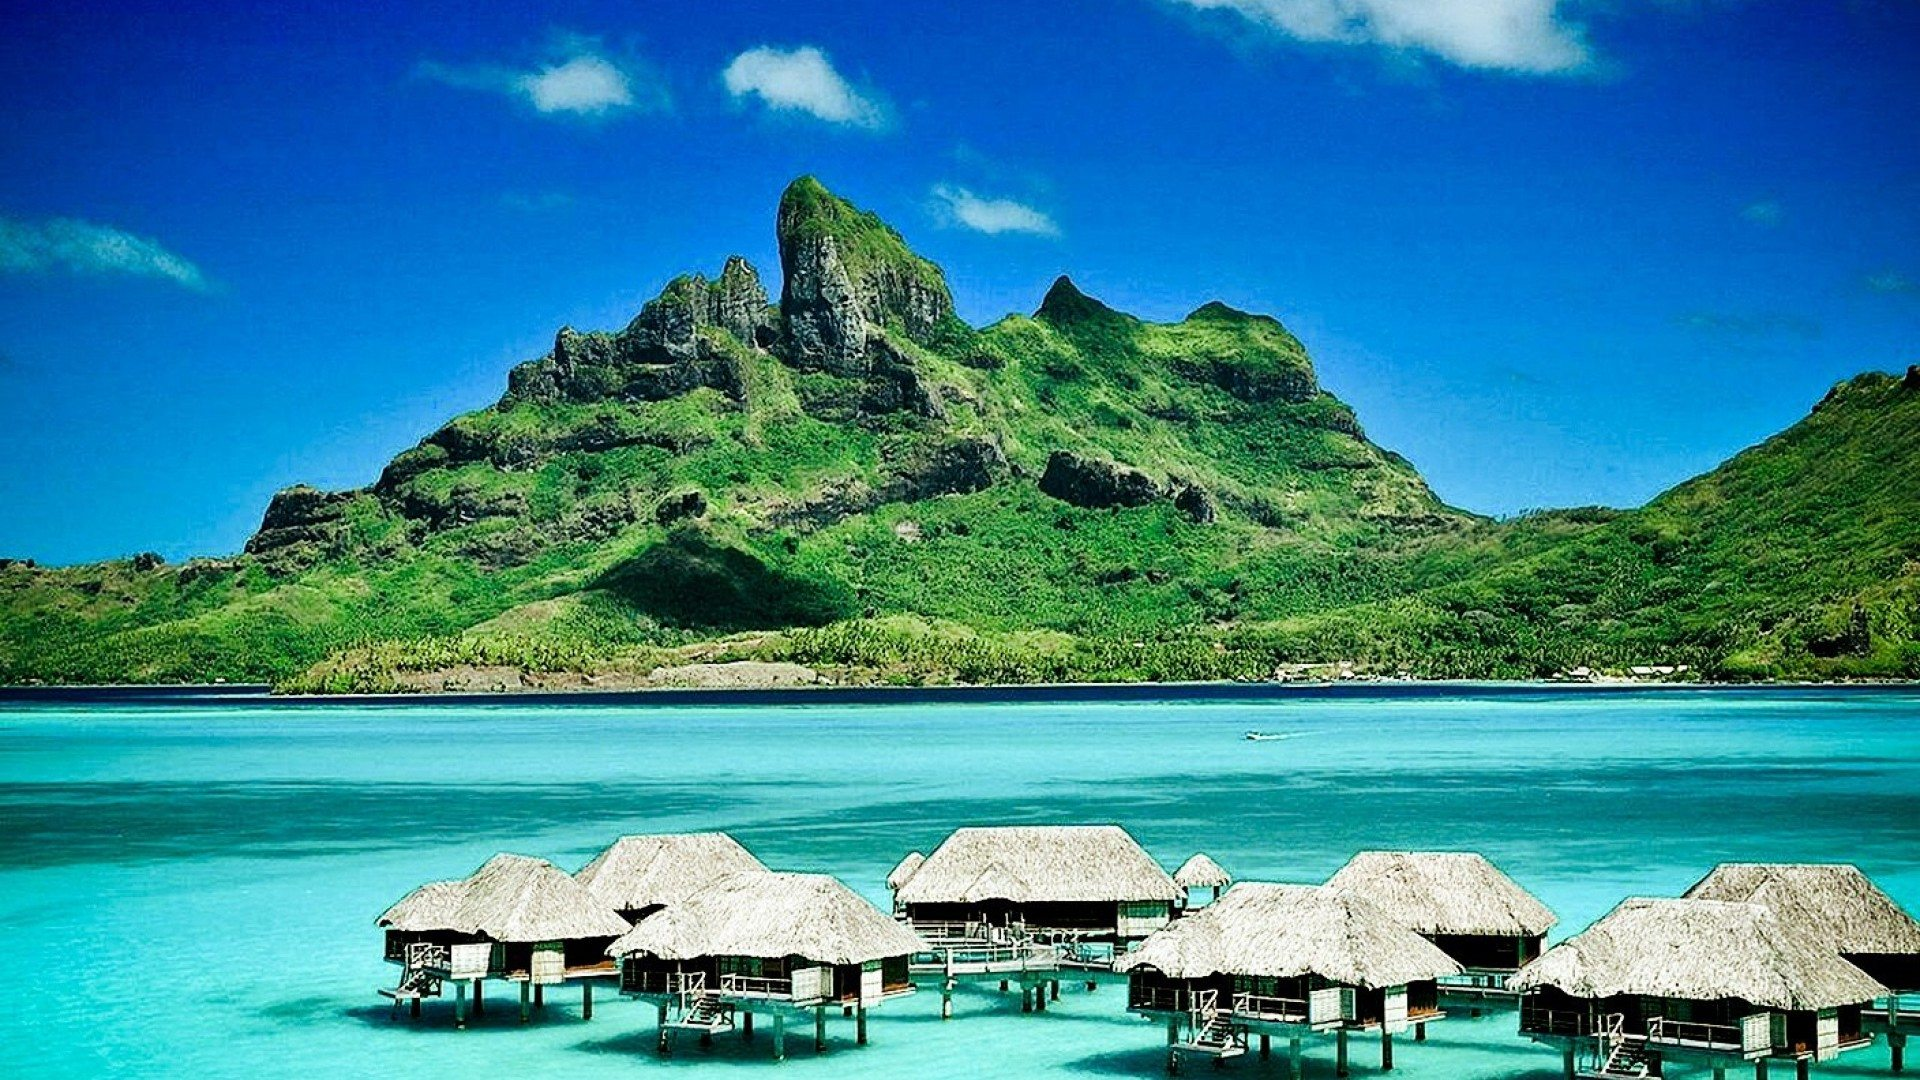 mauritius beautiful islands